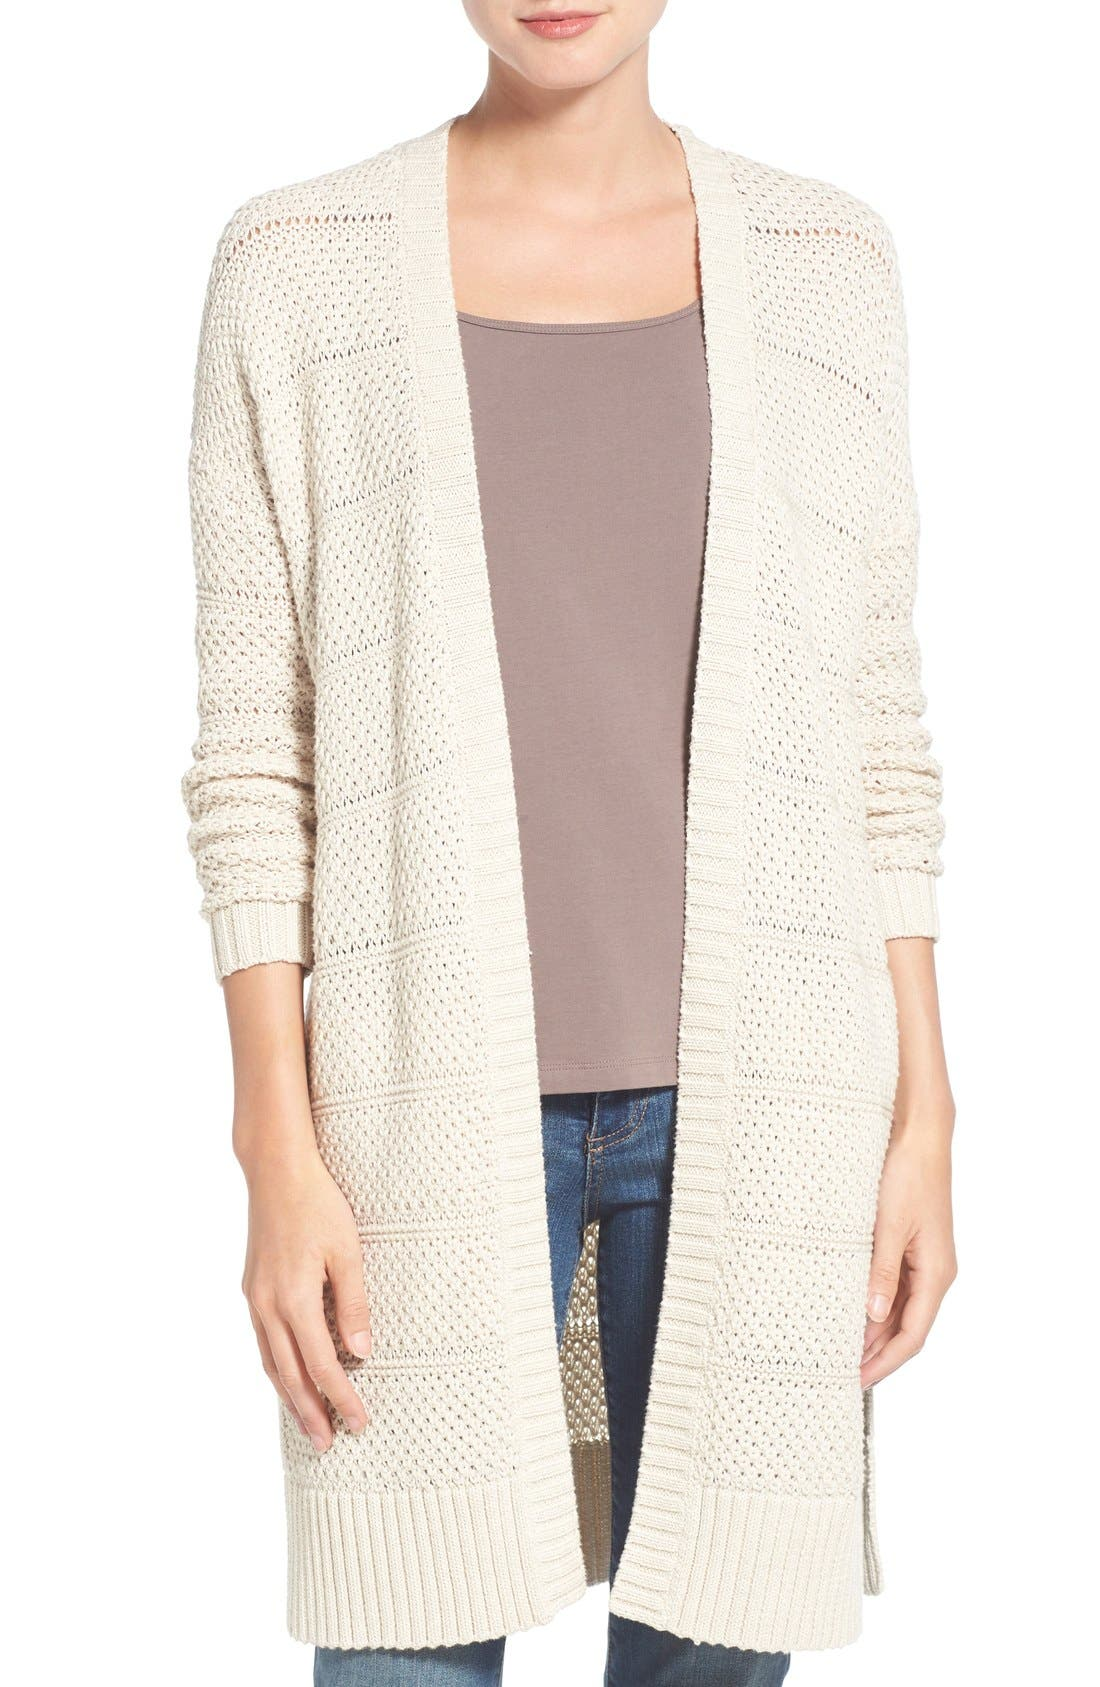 Alternate Image 1 Selected - Caslon® Open Stitch Long Cotton Cardigan (Regular & Petite)